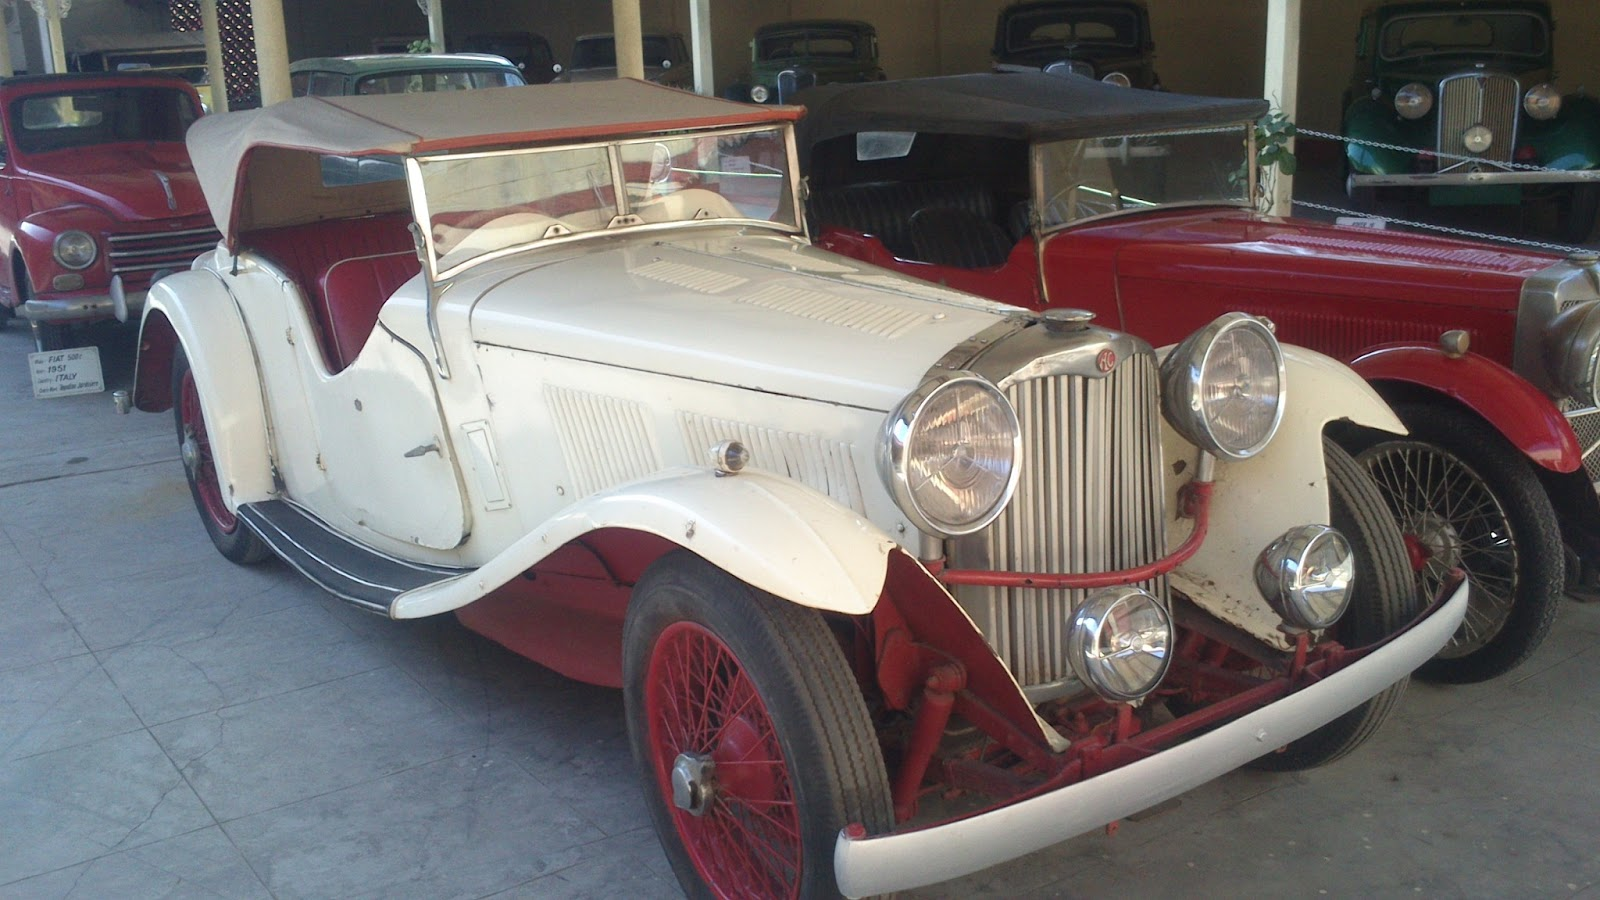 Travel diary: Vintage car museum, Ahmedabad : A trip down the memory ...